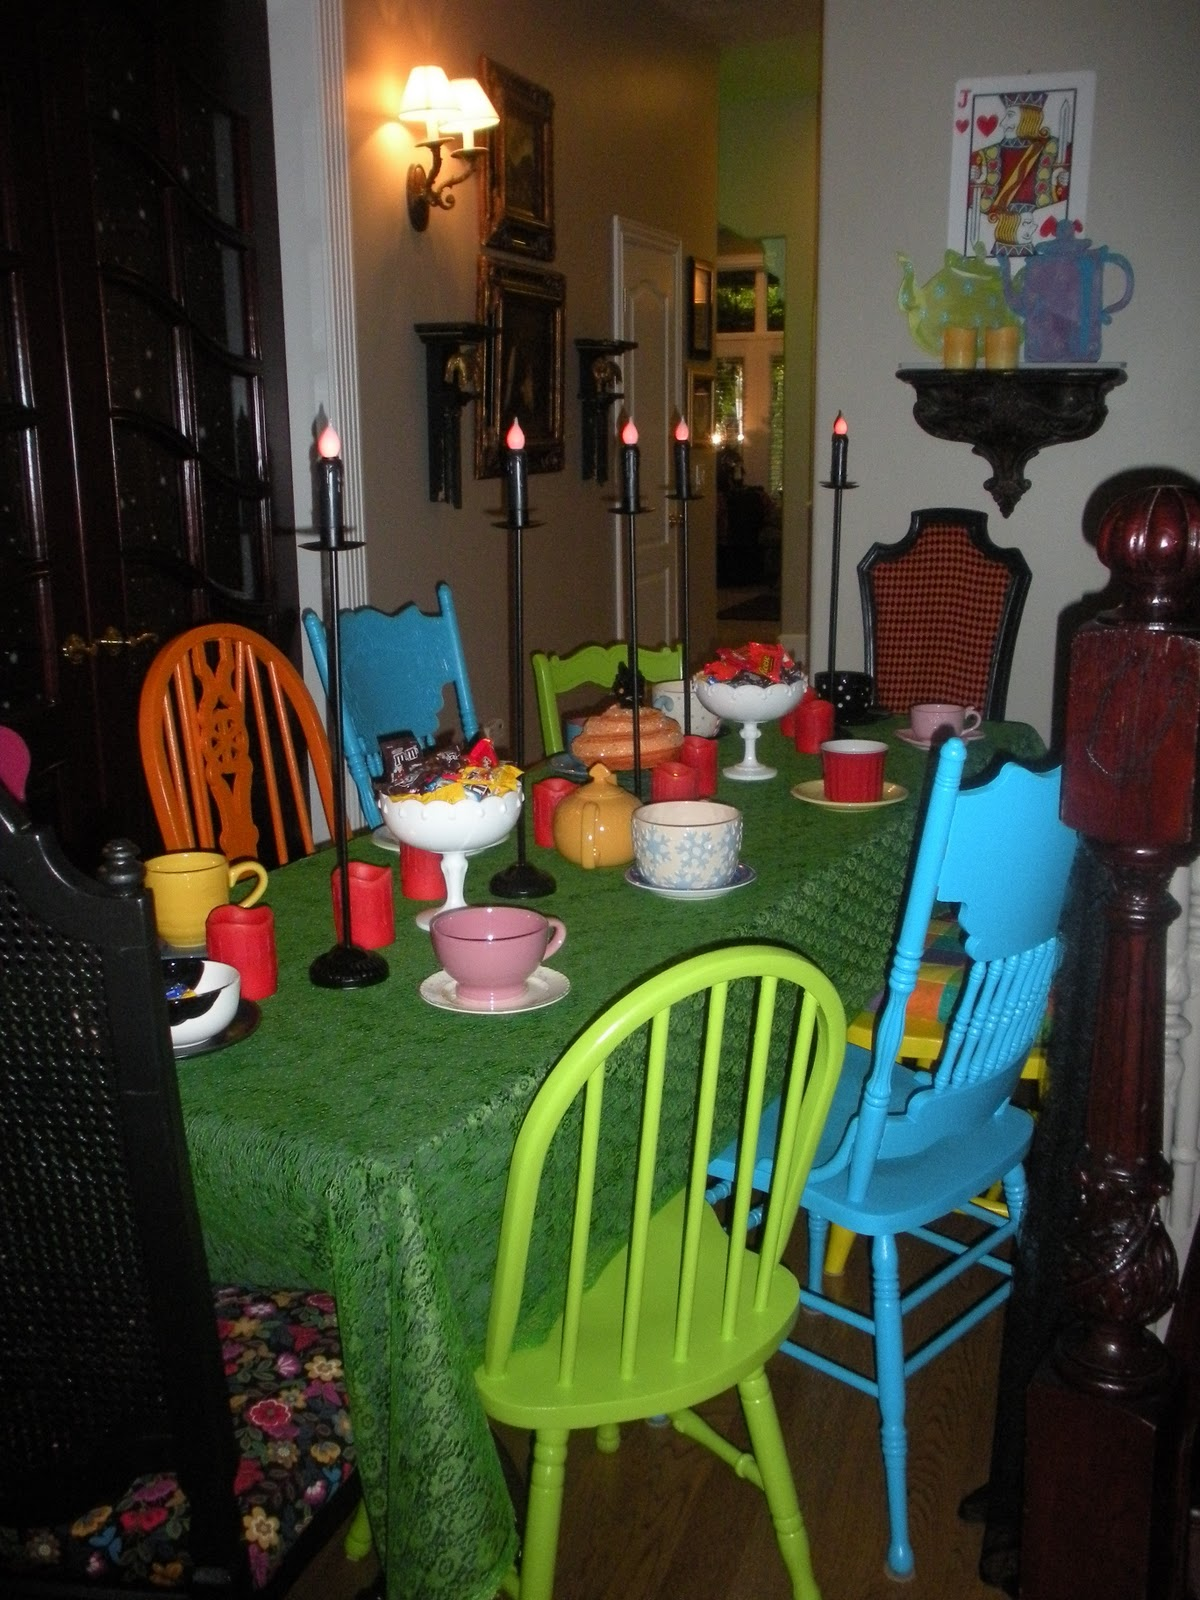 Alice In Wonderland Chair Folding With Canopy Walmart A Little Cuppa Tea Halloween And Chairs